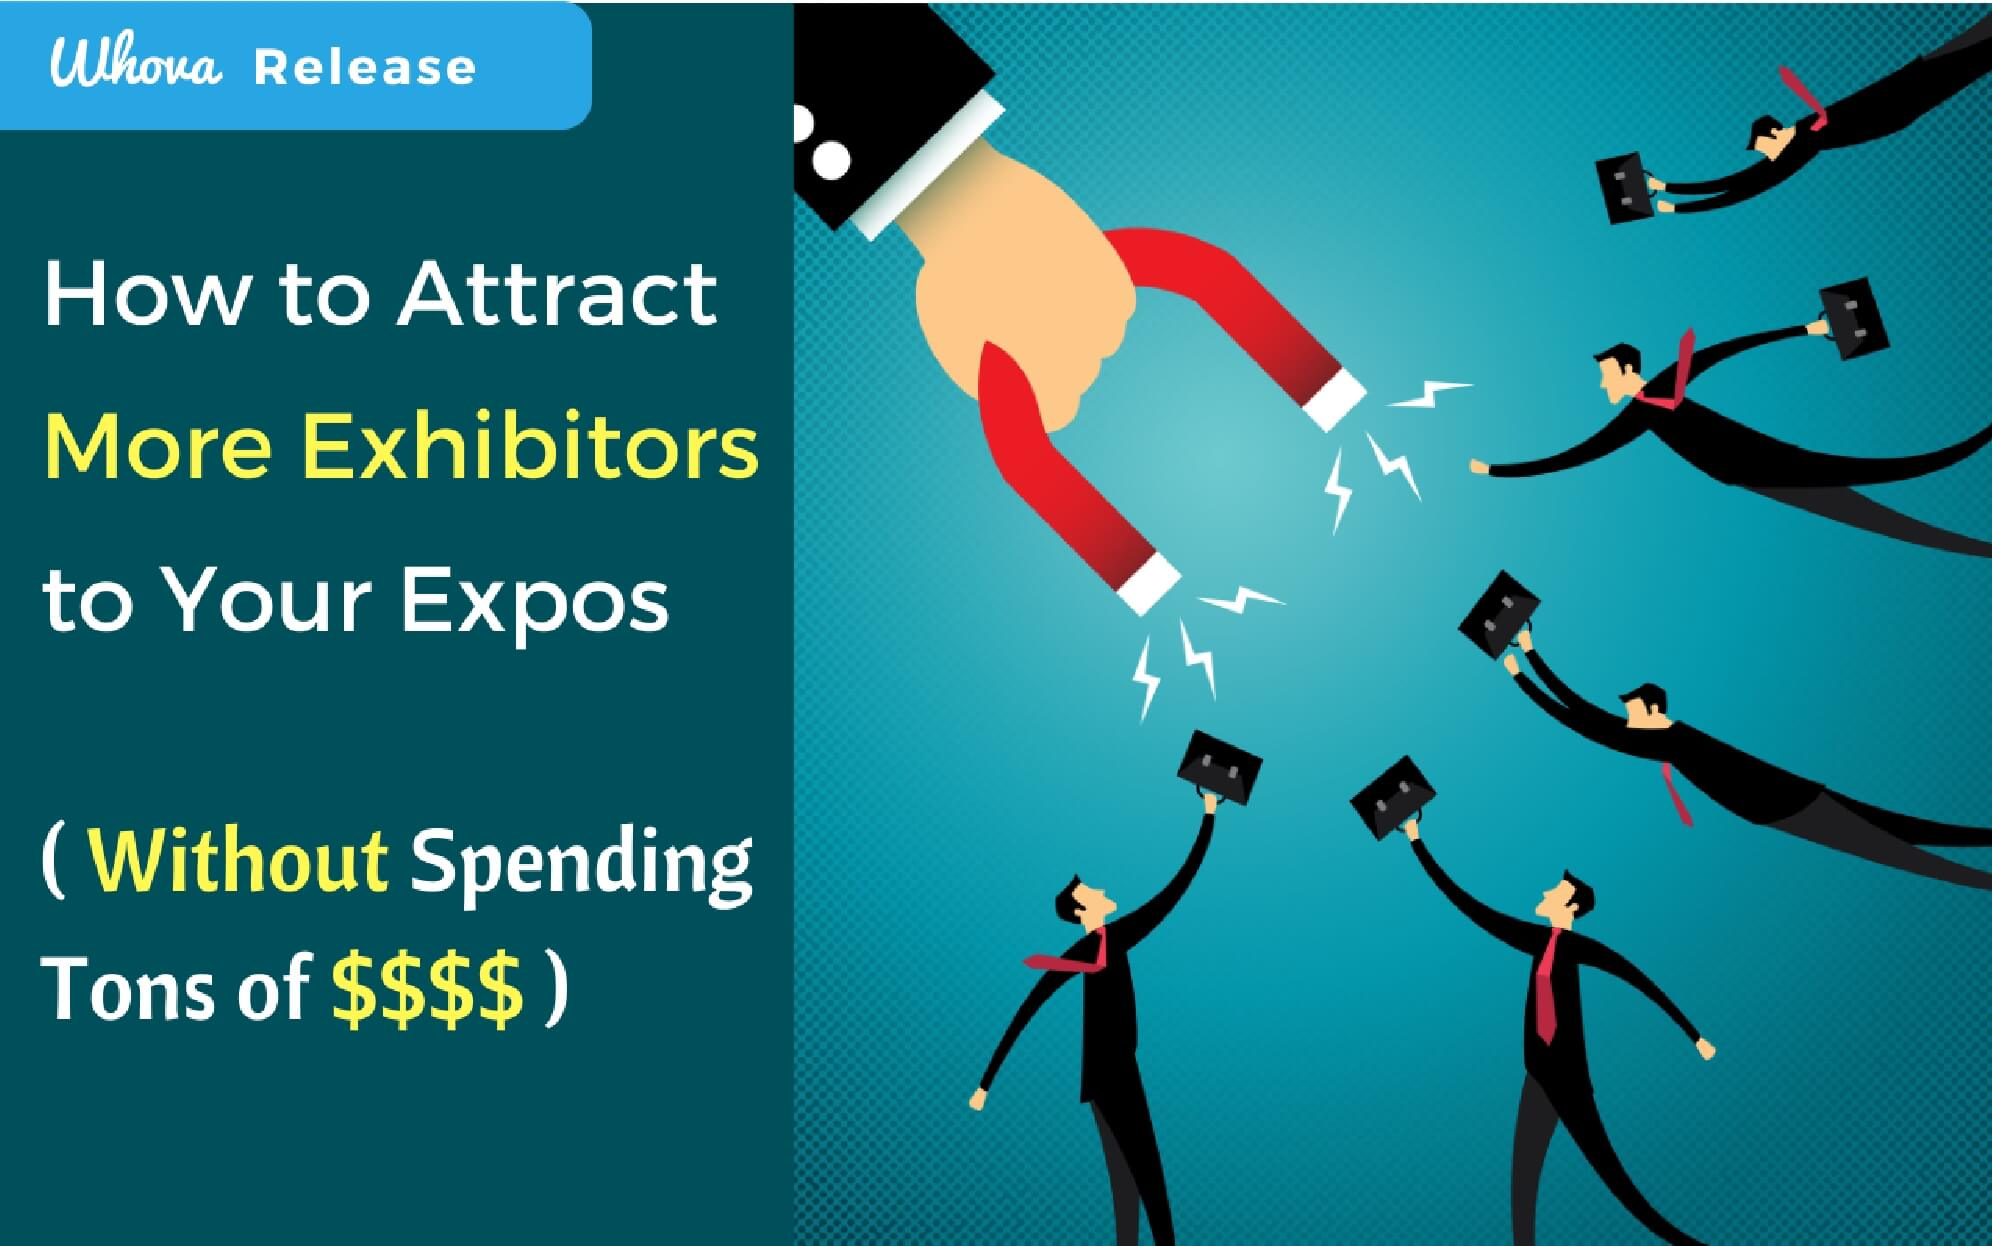 How to Attract More Exhibitors to Your Expos  (Without Spending Tons of Money)